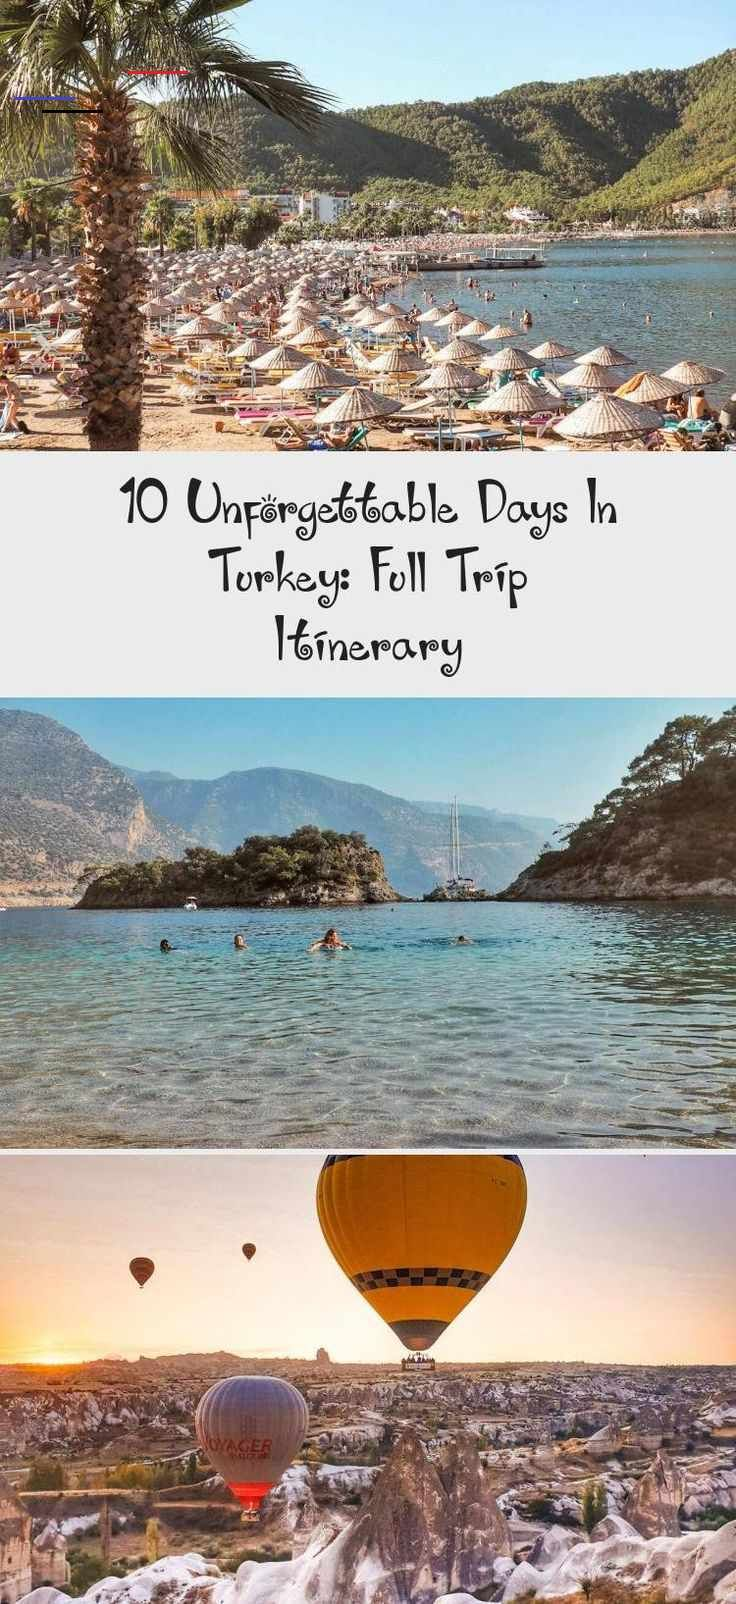 10 Unforgettable Days In Turkey: Full Trip Itinerary - Yasmin's Blog 10 day travel itinerary for Turkey. Get a full guide covering Marmaris, Pamukkale, Cappadocia, Antalya, Fethiye and Dalyan PLUS important travel tips and need-to-know information for anyone planning a trip to Turkey. Click for the guide!  #turkey #travel #destinations #bestthingstodo #placestogo #cappadocia #pamukkale #fethiye #dalyan #dalaman #marmaris #konya #cities #touristattractions #Travelstories<br> 10 day travel itinera